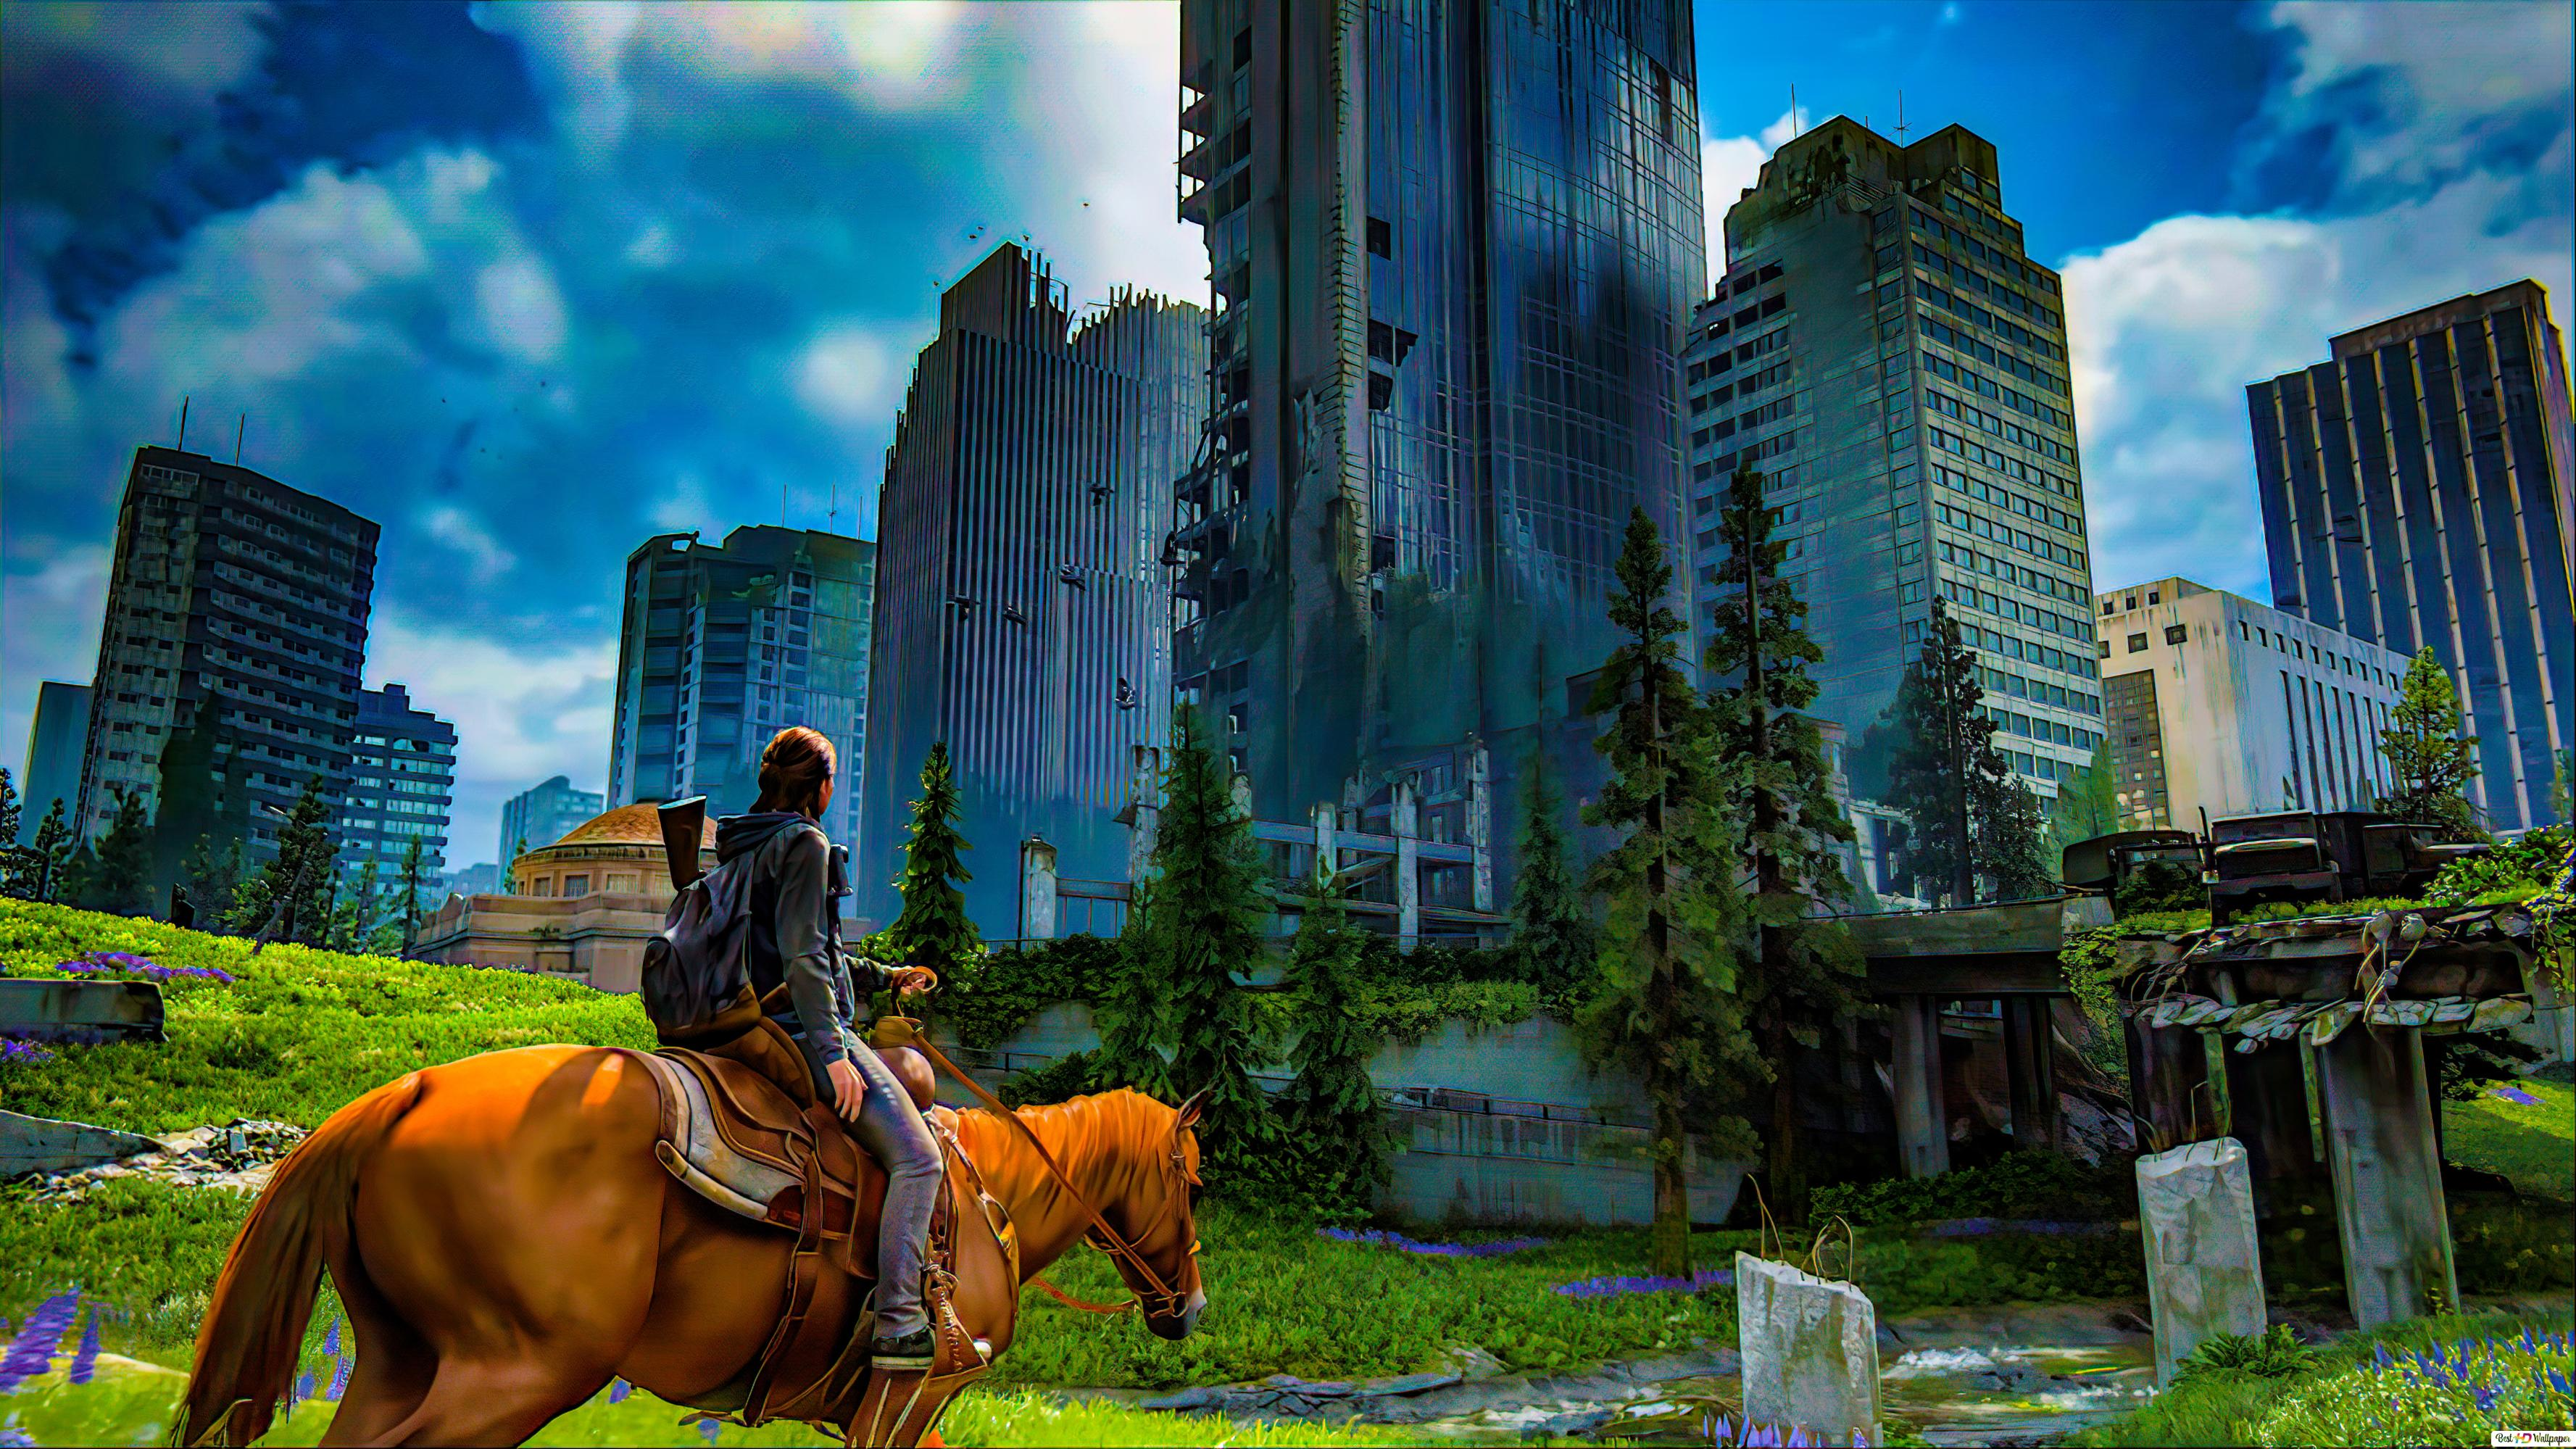 The Last Of Us 2 01 8k 4k Wallpaper Ellie With Horse City Hd Wallpaper Download